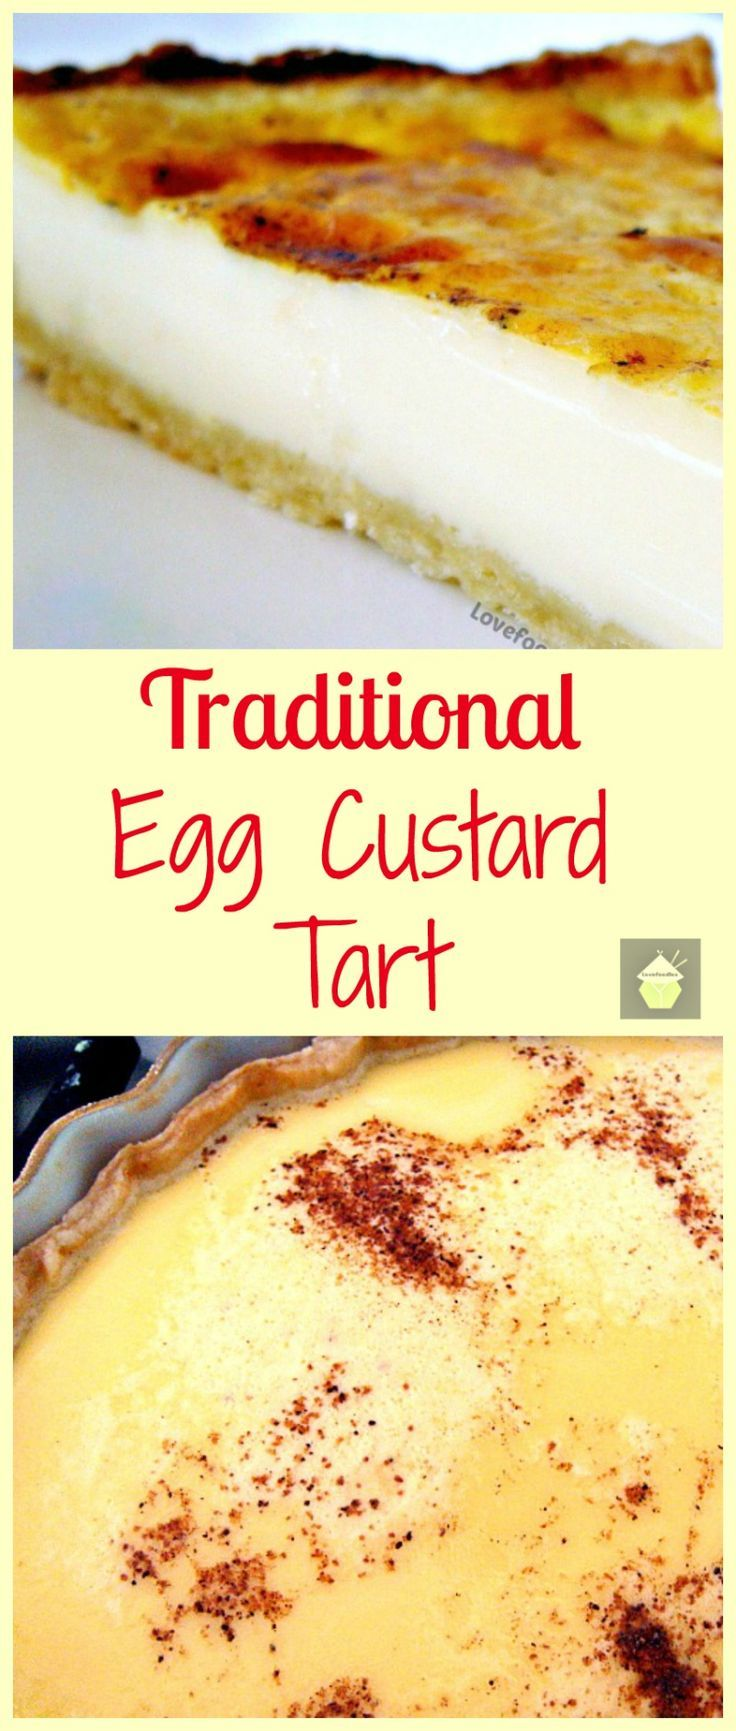 Traditional Egg Custard Tart with a lovely home made pastry and a very silky smooth filling. Serve warm or chilled... I love mine chilled! You can also make mini ones in a muffin pan if you prefer!